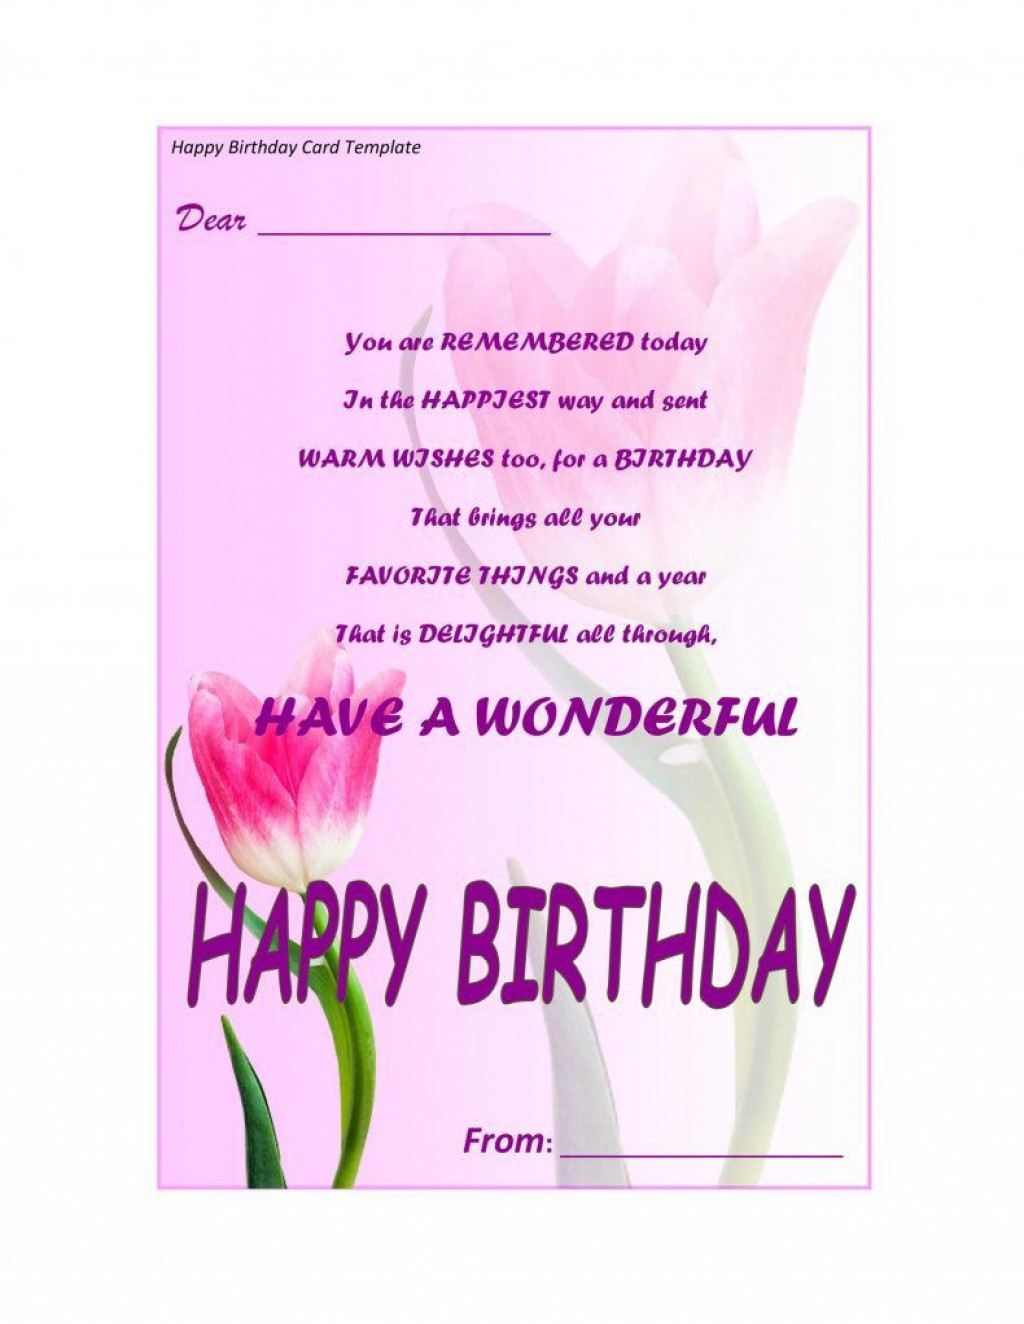 004 Awful Birthday Card Template For Microsoft Word High Def  Free Greeting LayoutLarge